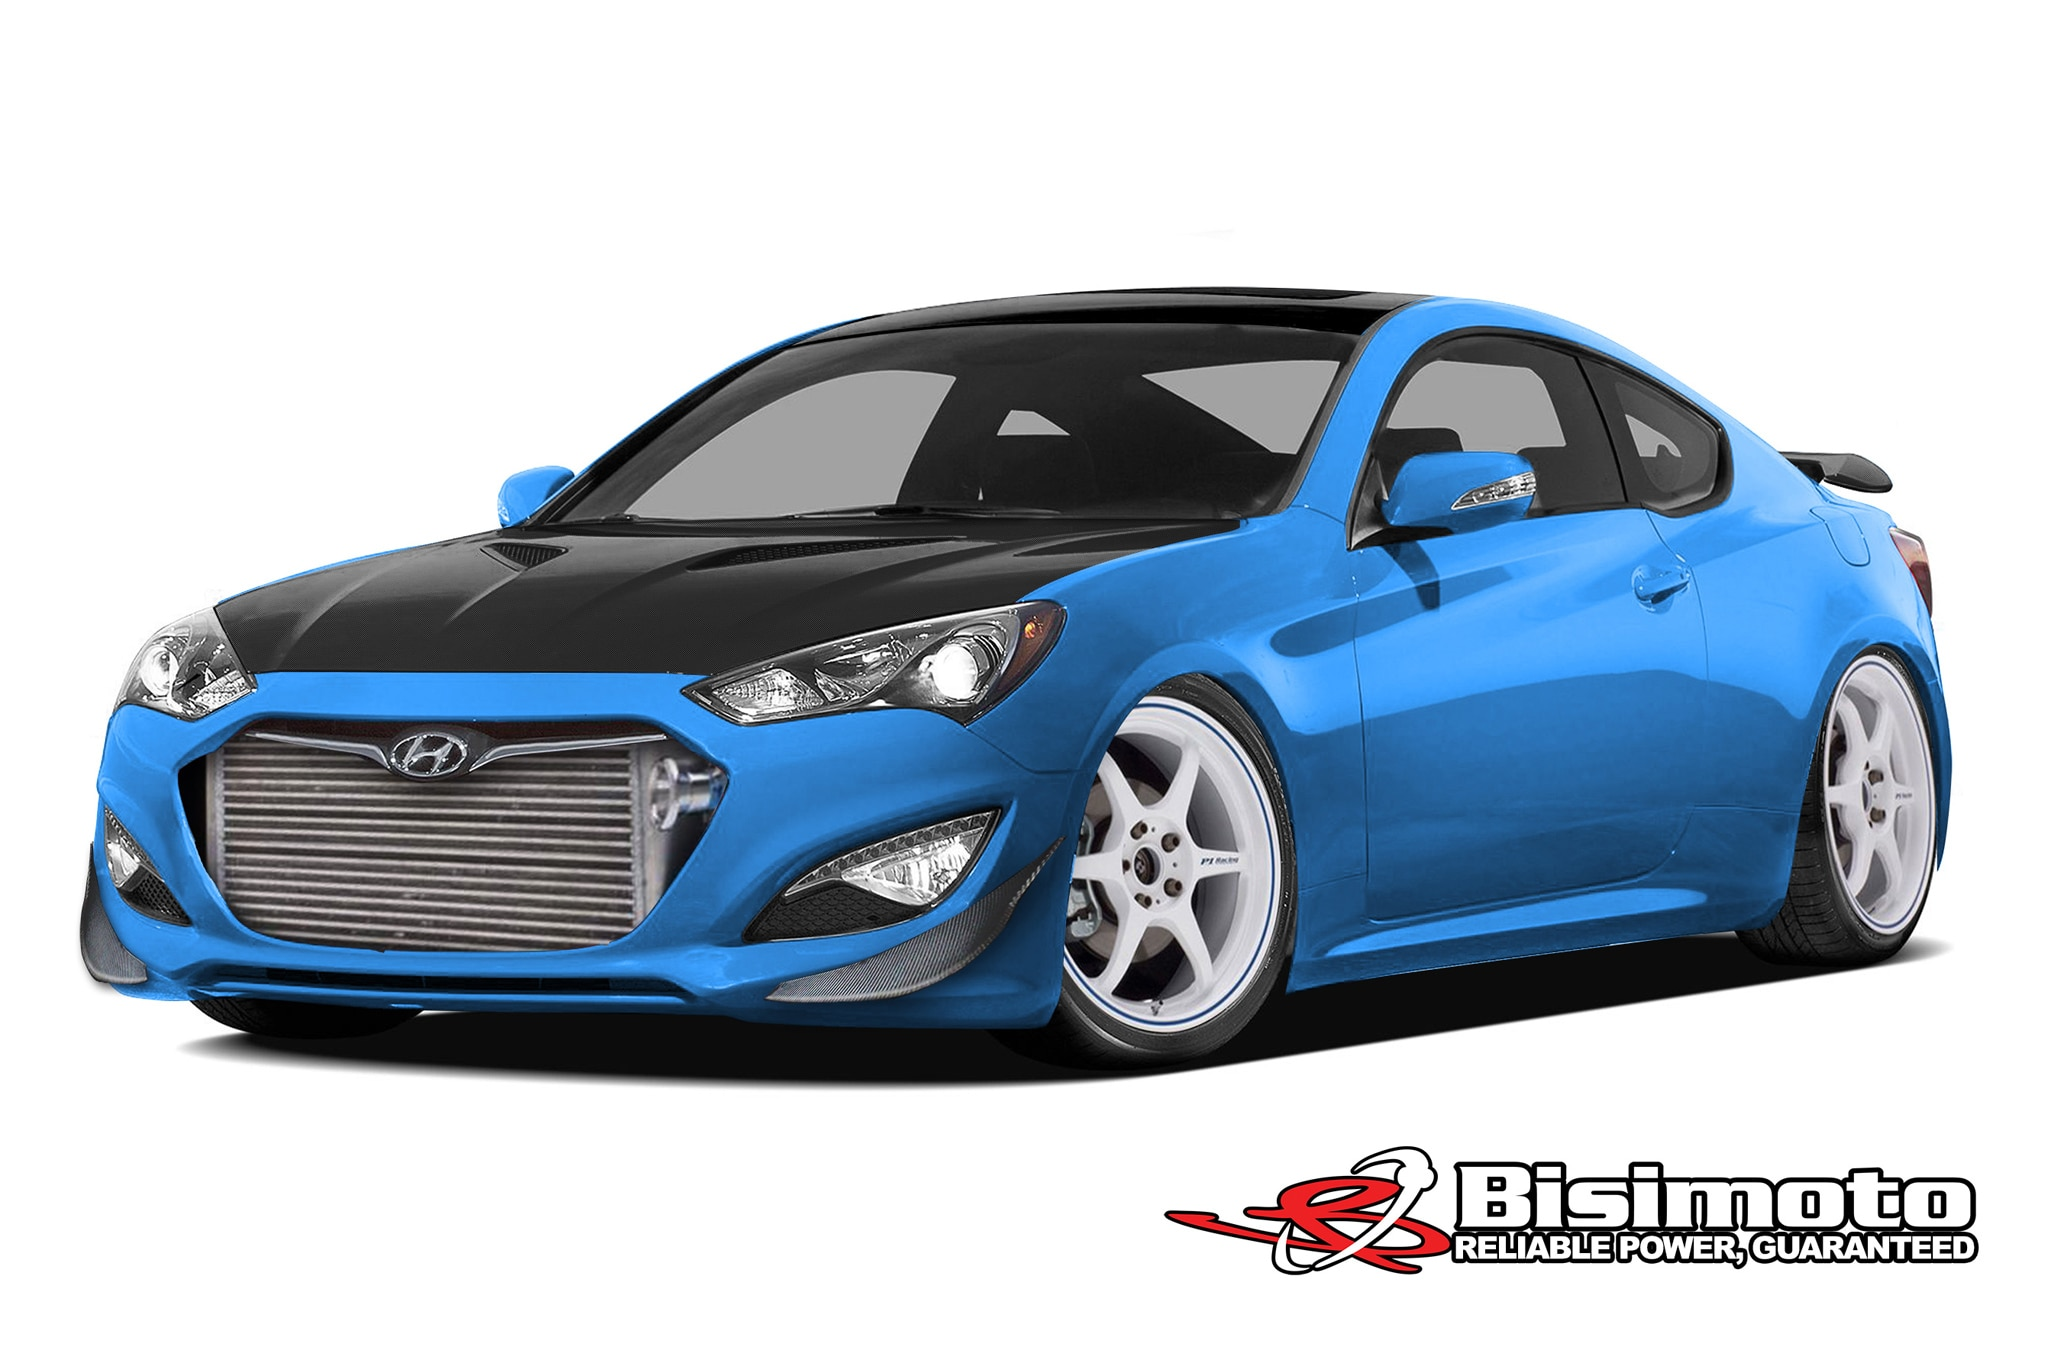 2013 Hyundai Genesis Coupe By Bisimoto Engineering Front Three Quarter1